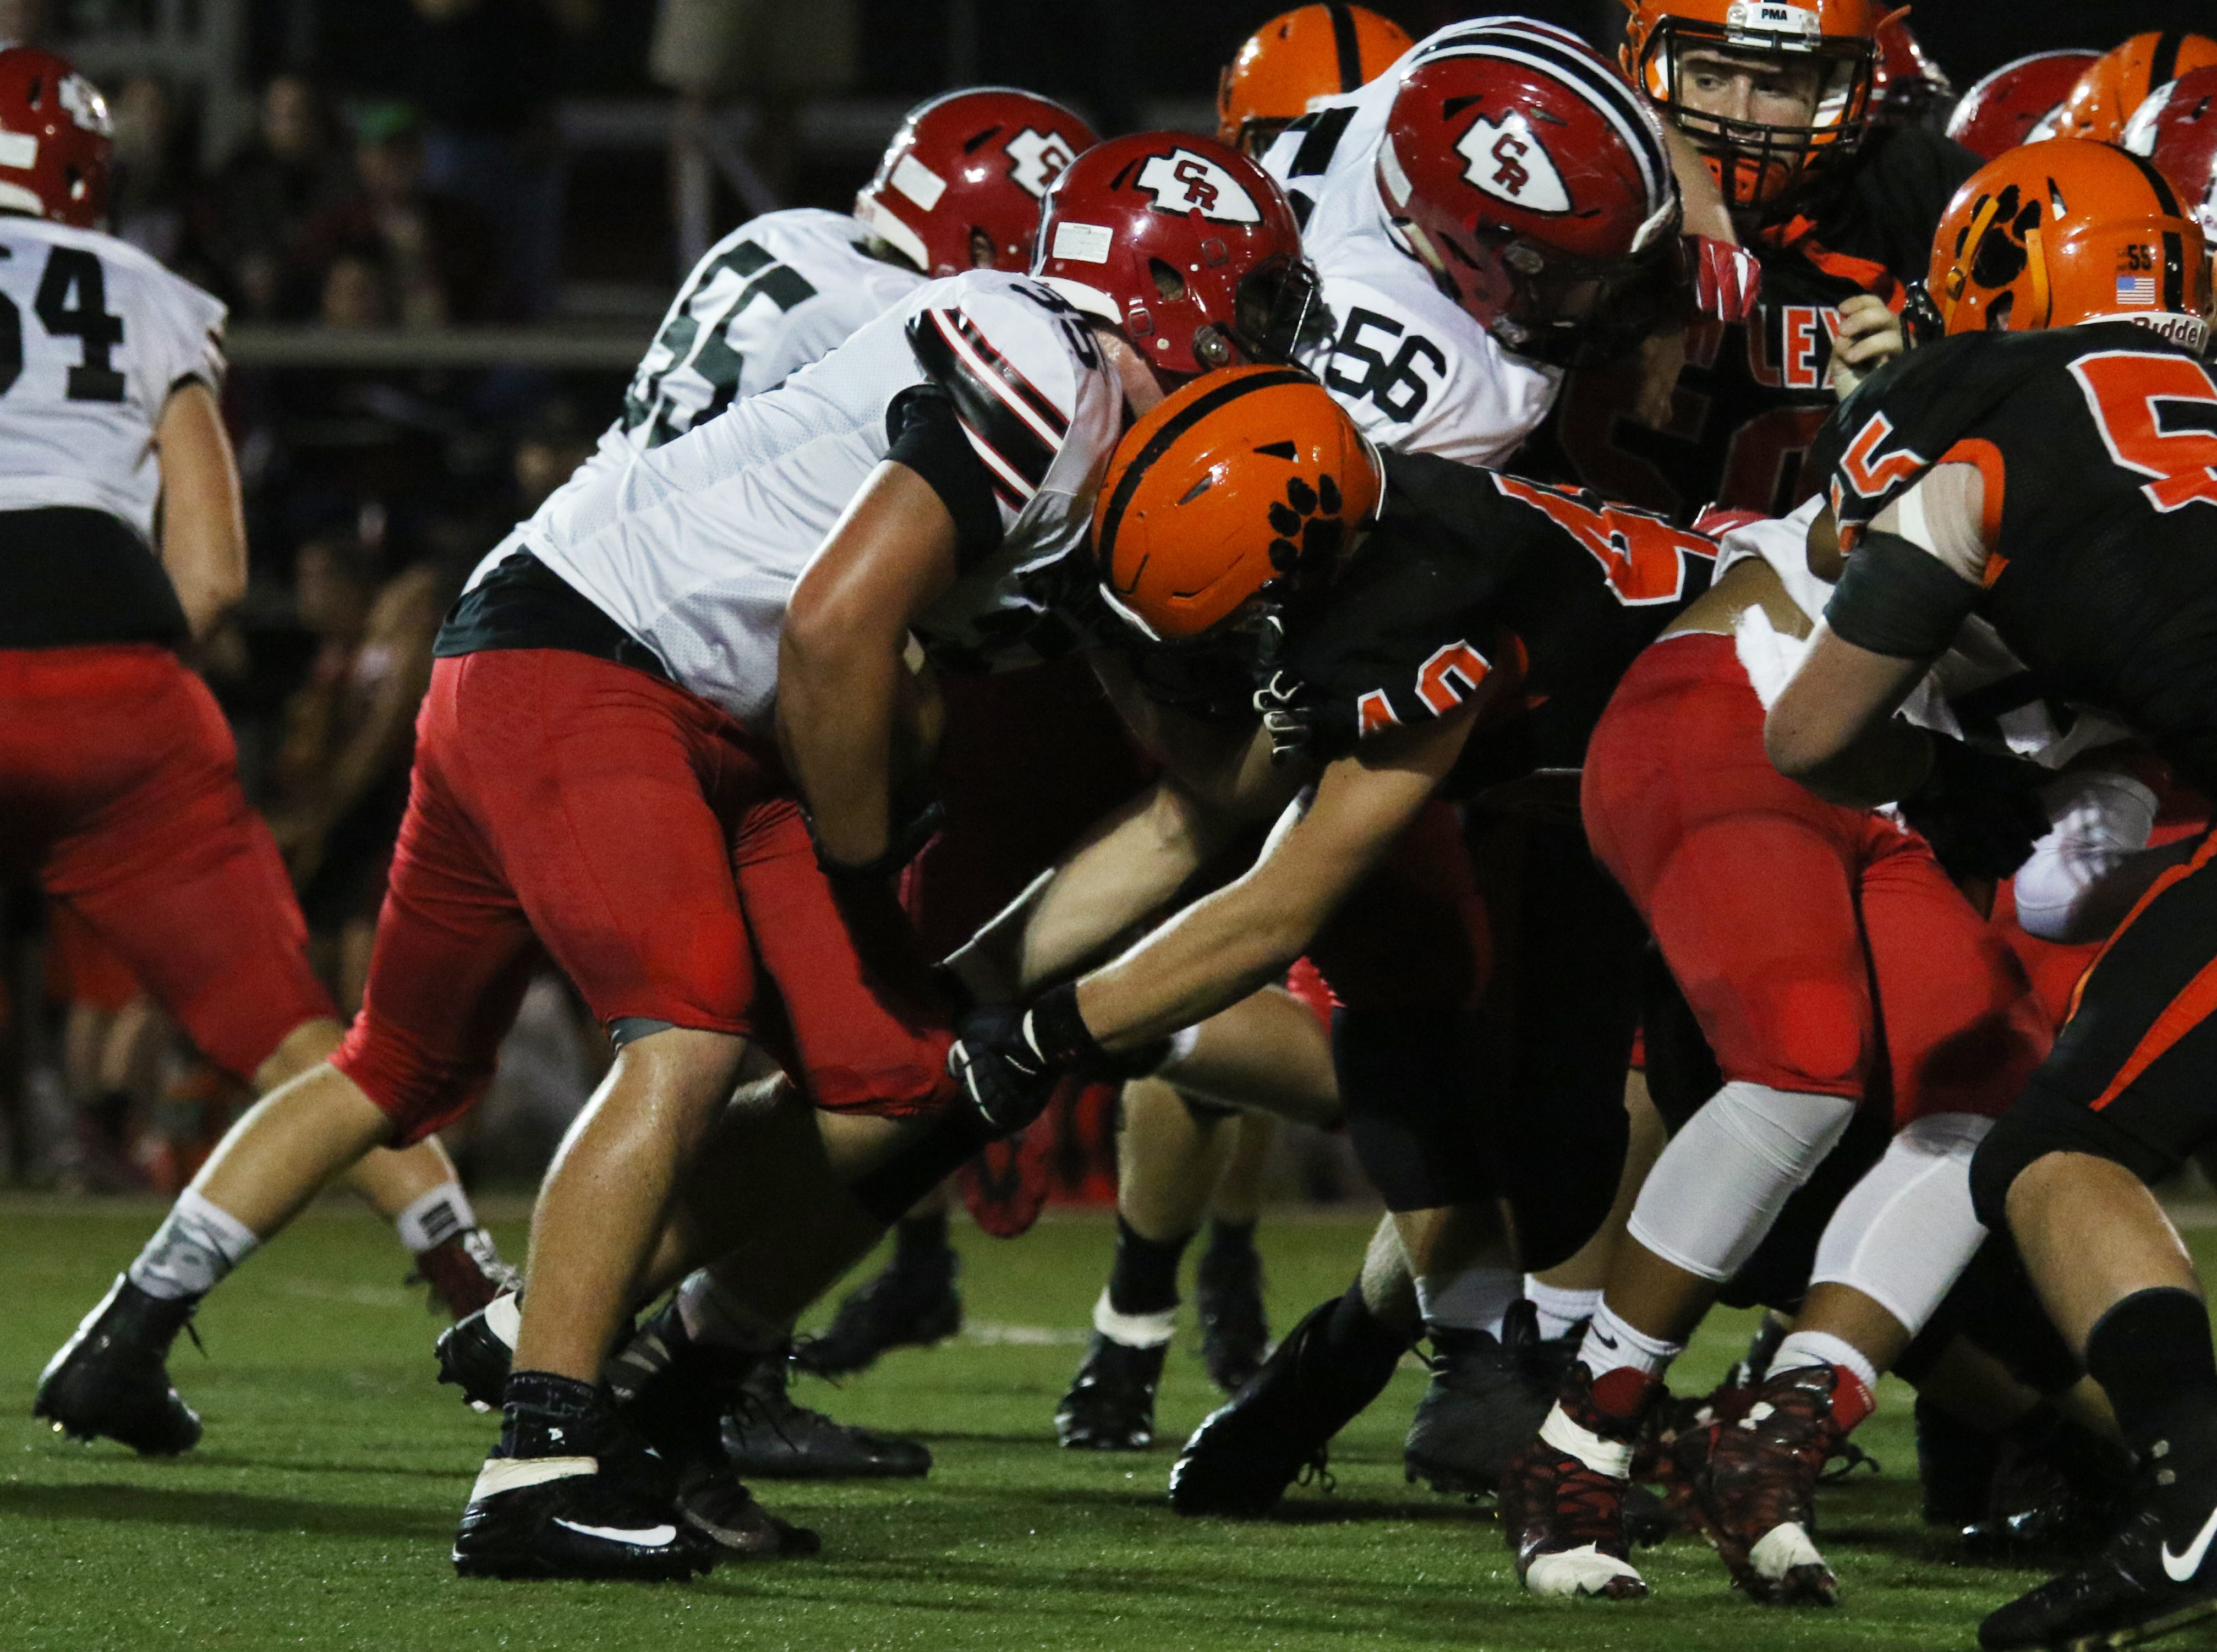 New Lexington's Seth Burgess stops Coshocton's Zach Bradford at the line of scrimmage.